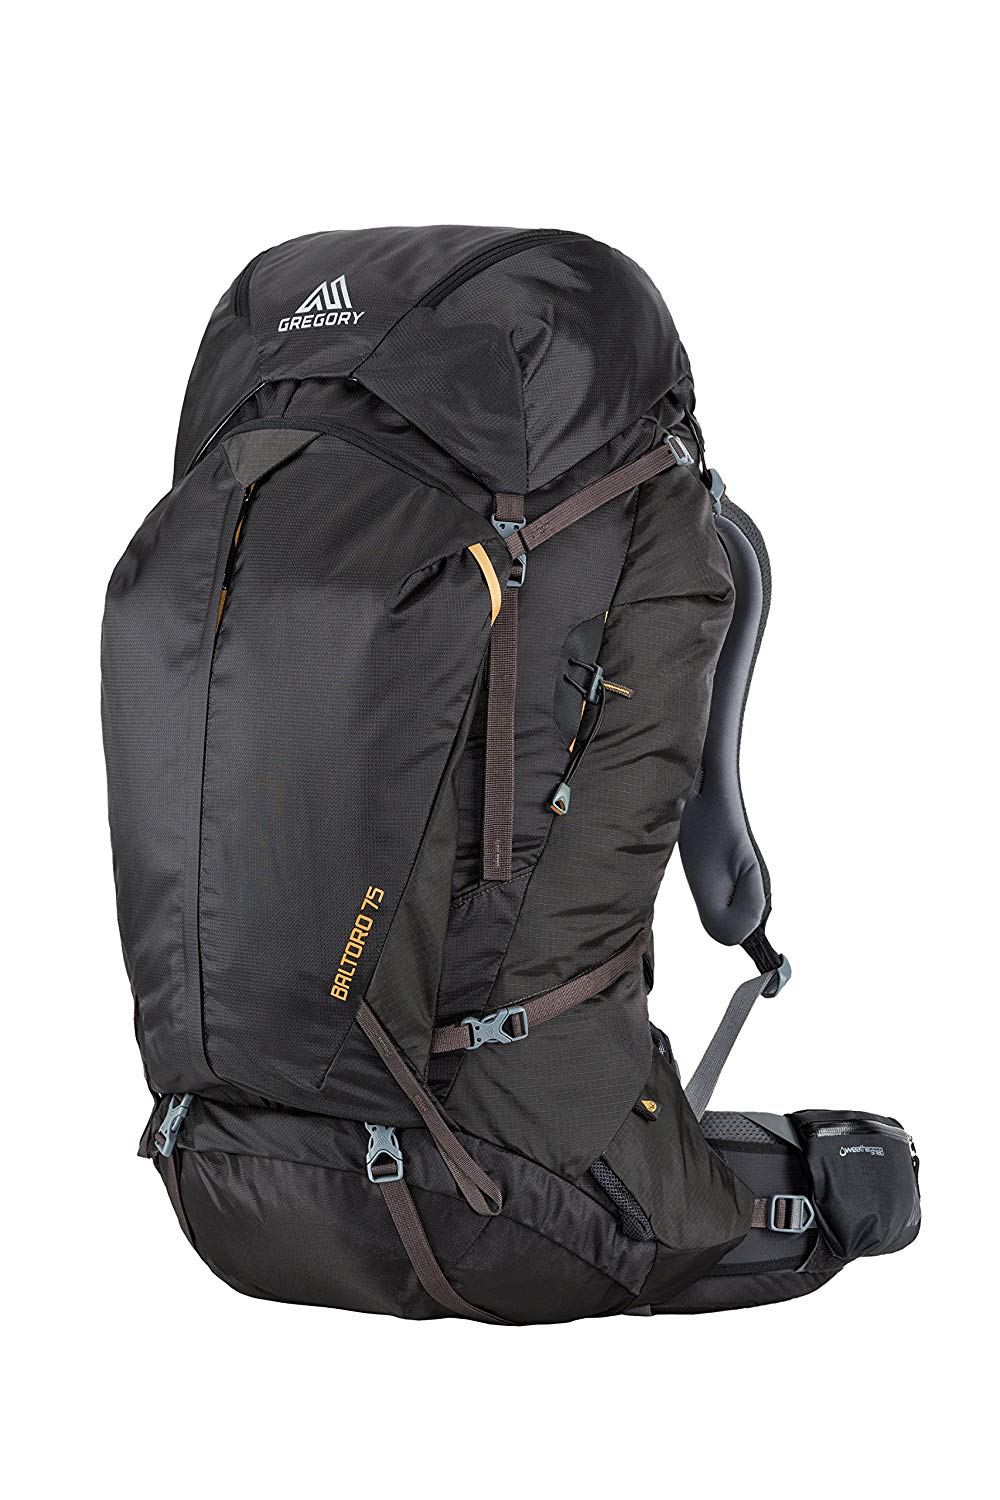 Gregory Mountain Products Baltoro 75 Liter Men's Multi Day Hiking Backpack